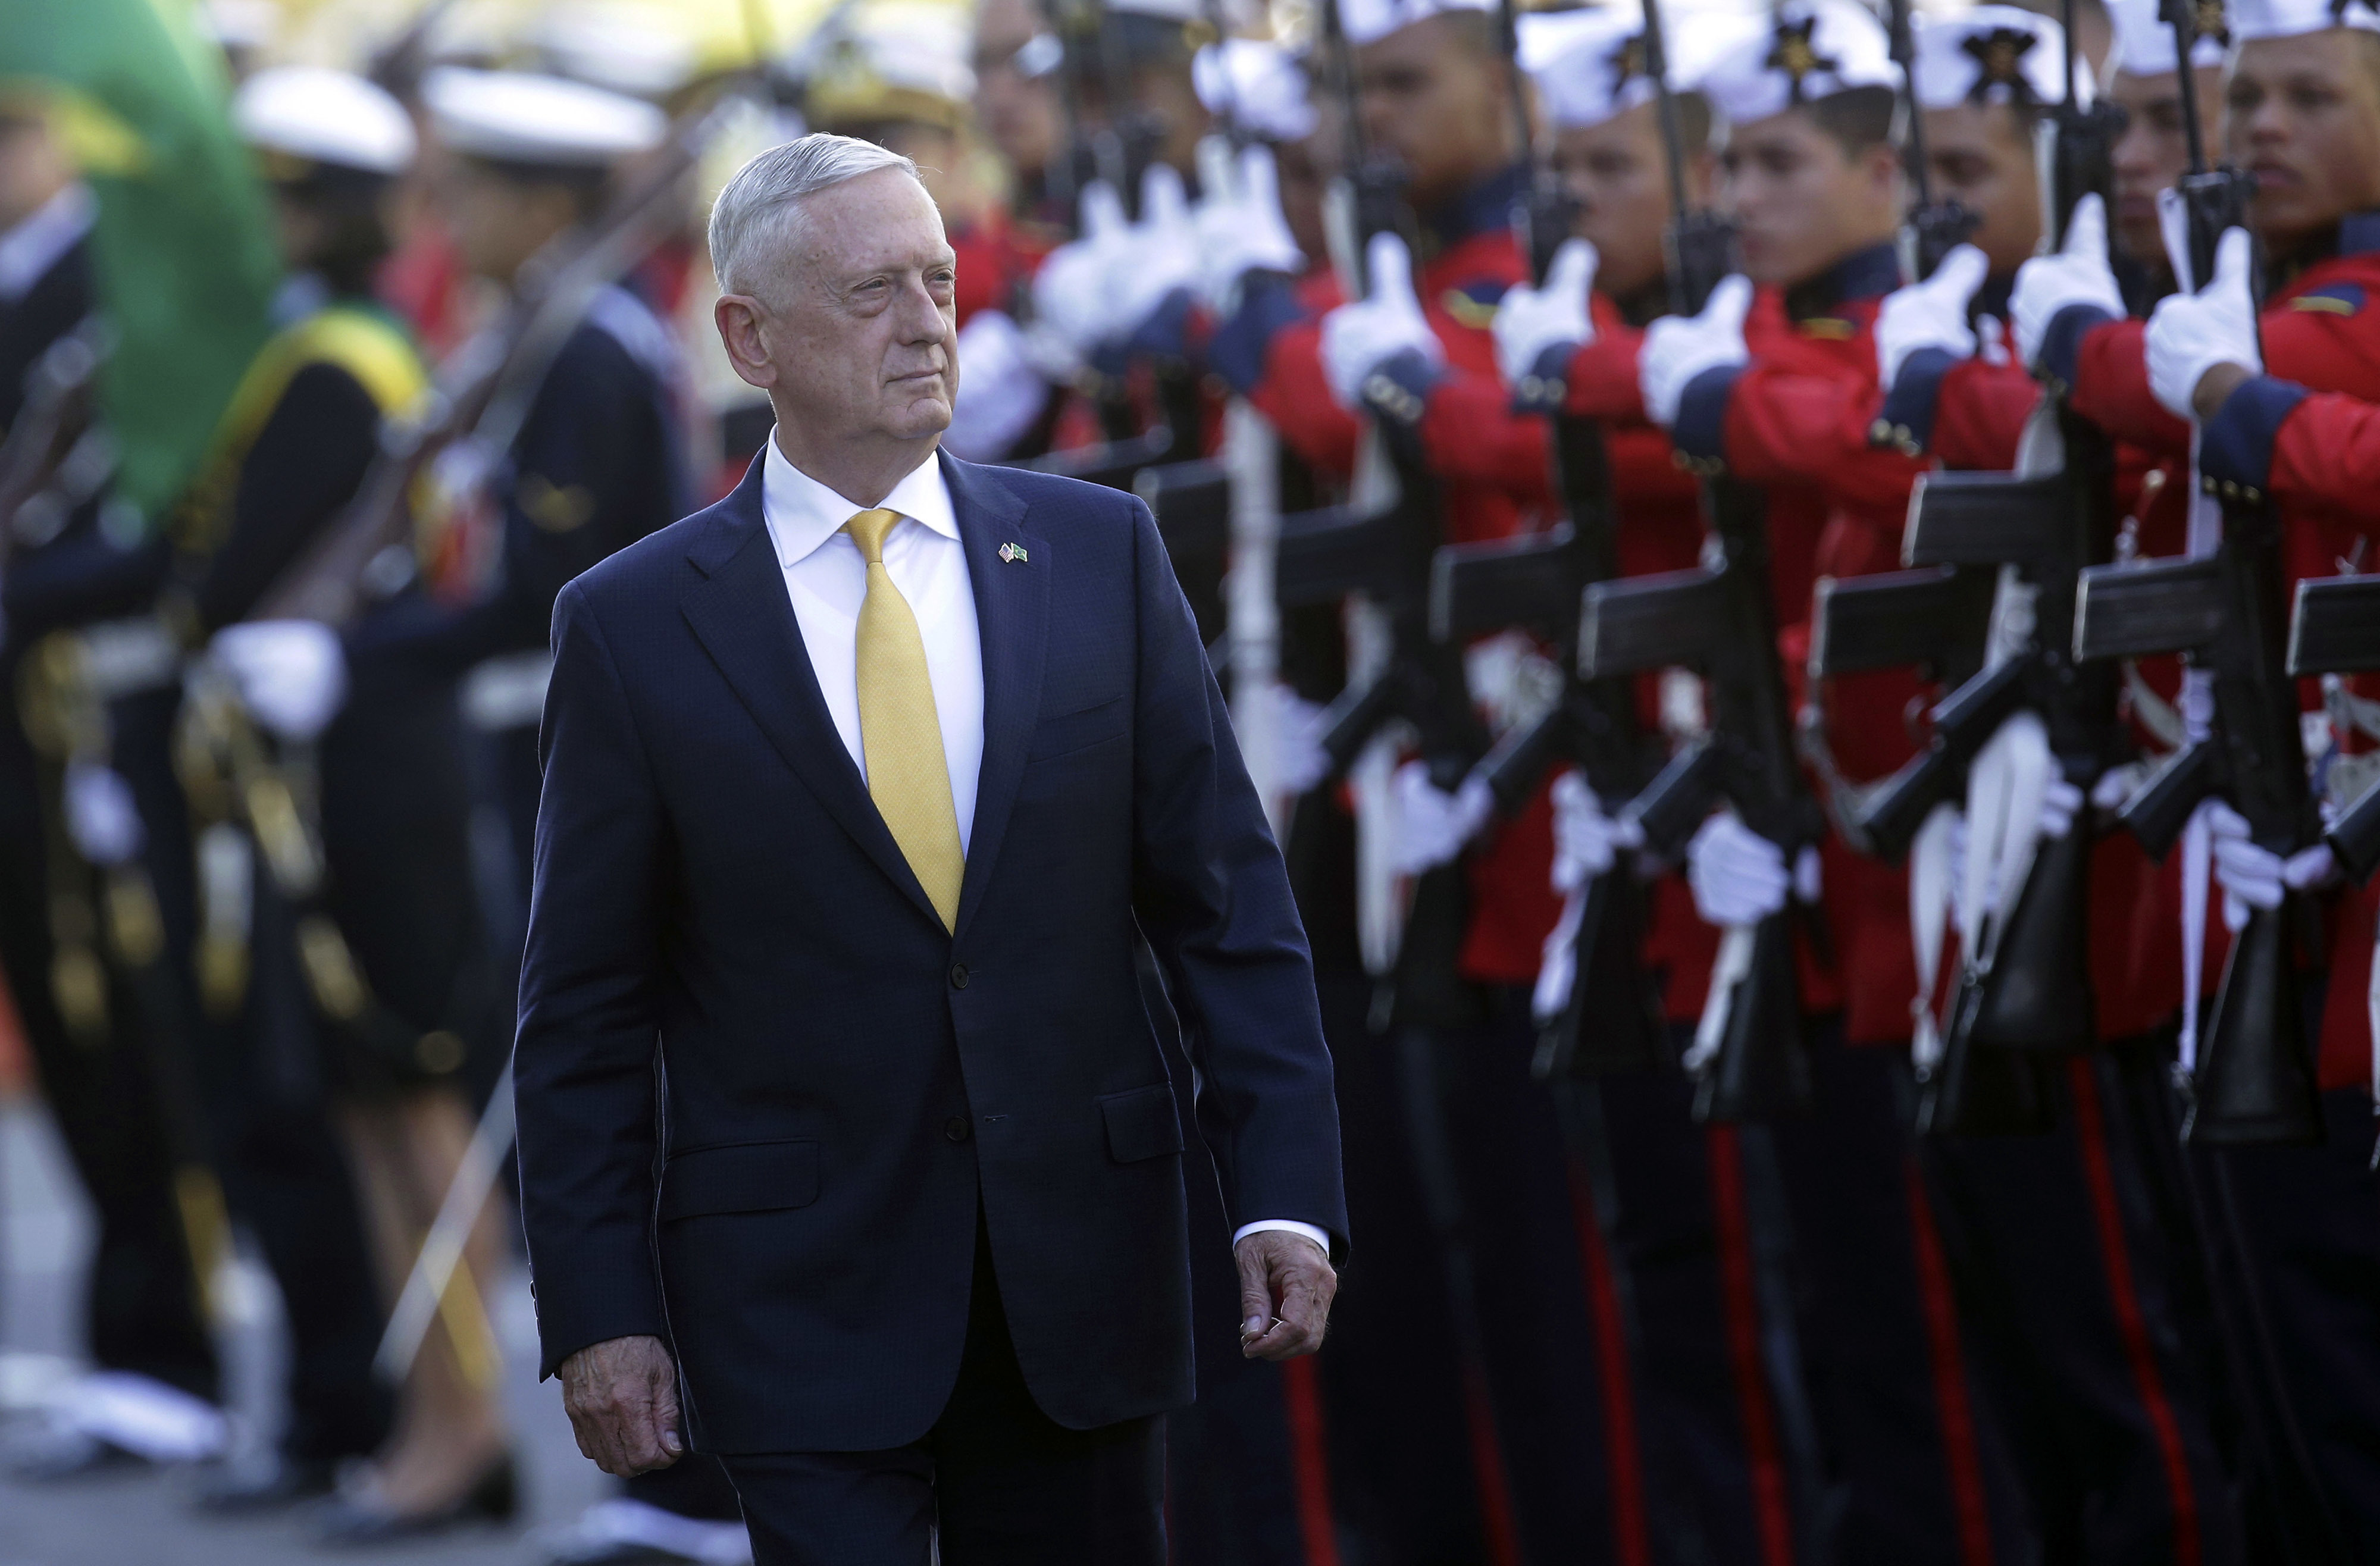 U.S. Secretary of Defense Jim Mattis receives military honors before his meeting with Brazil's defense minister, in Brasilia, Brazil, Aug. 13, 2018. Mattis has spent six days visiting South American countries, including Brazil, Argentina, Chile and C...